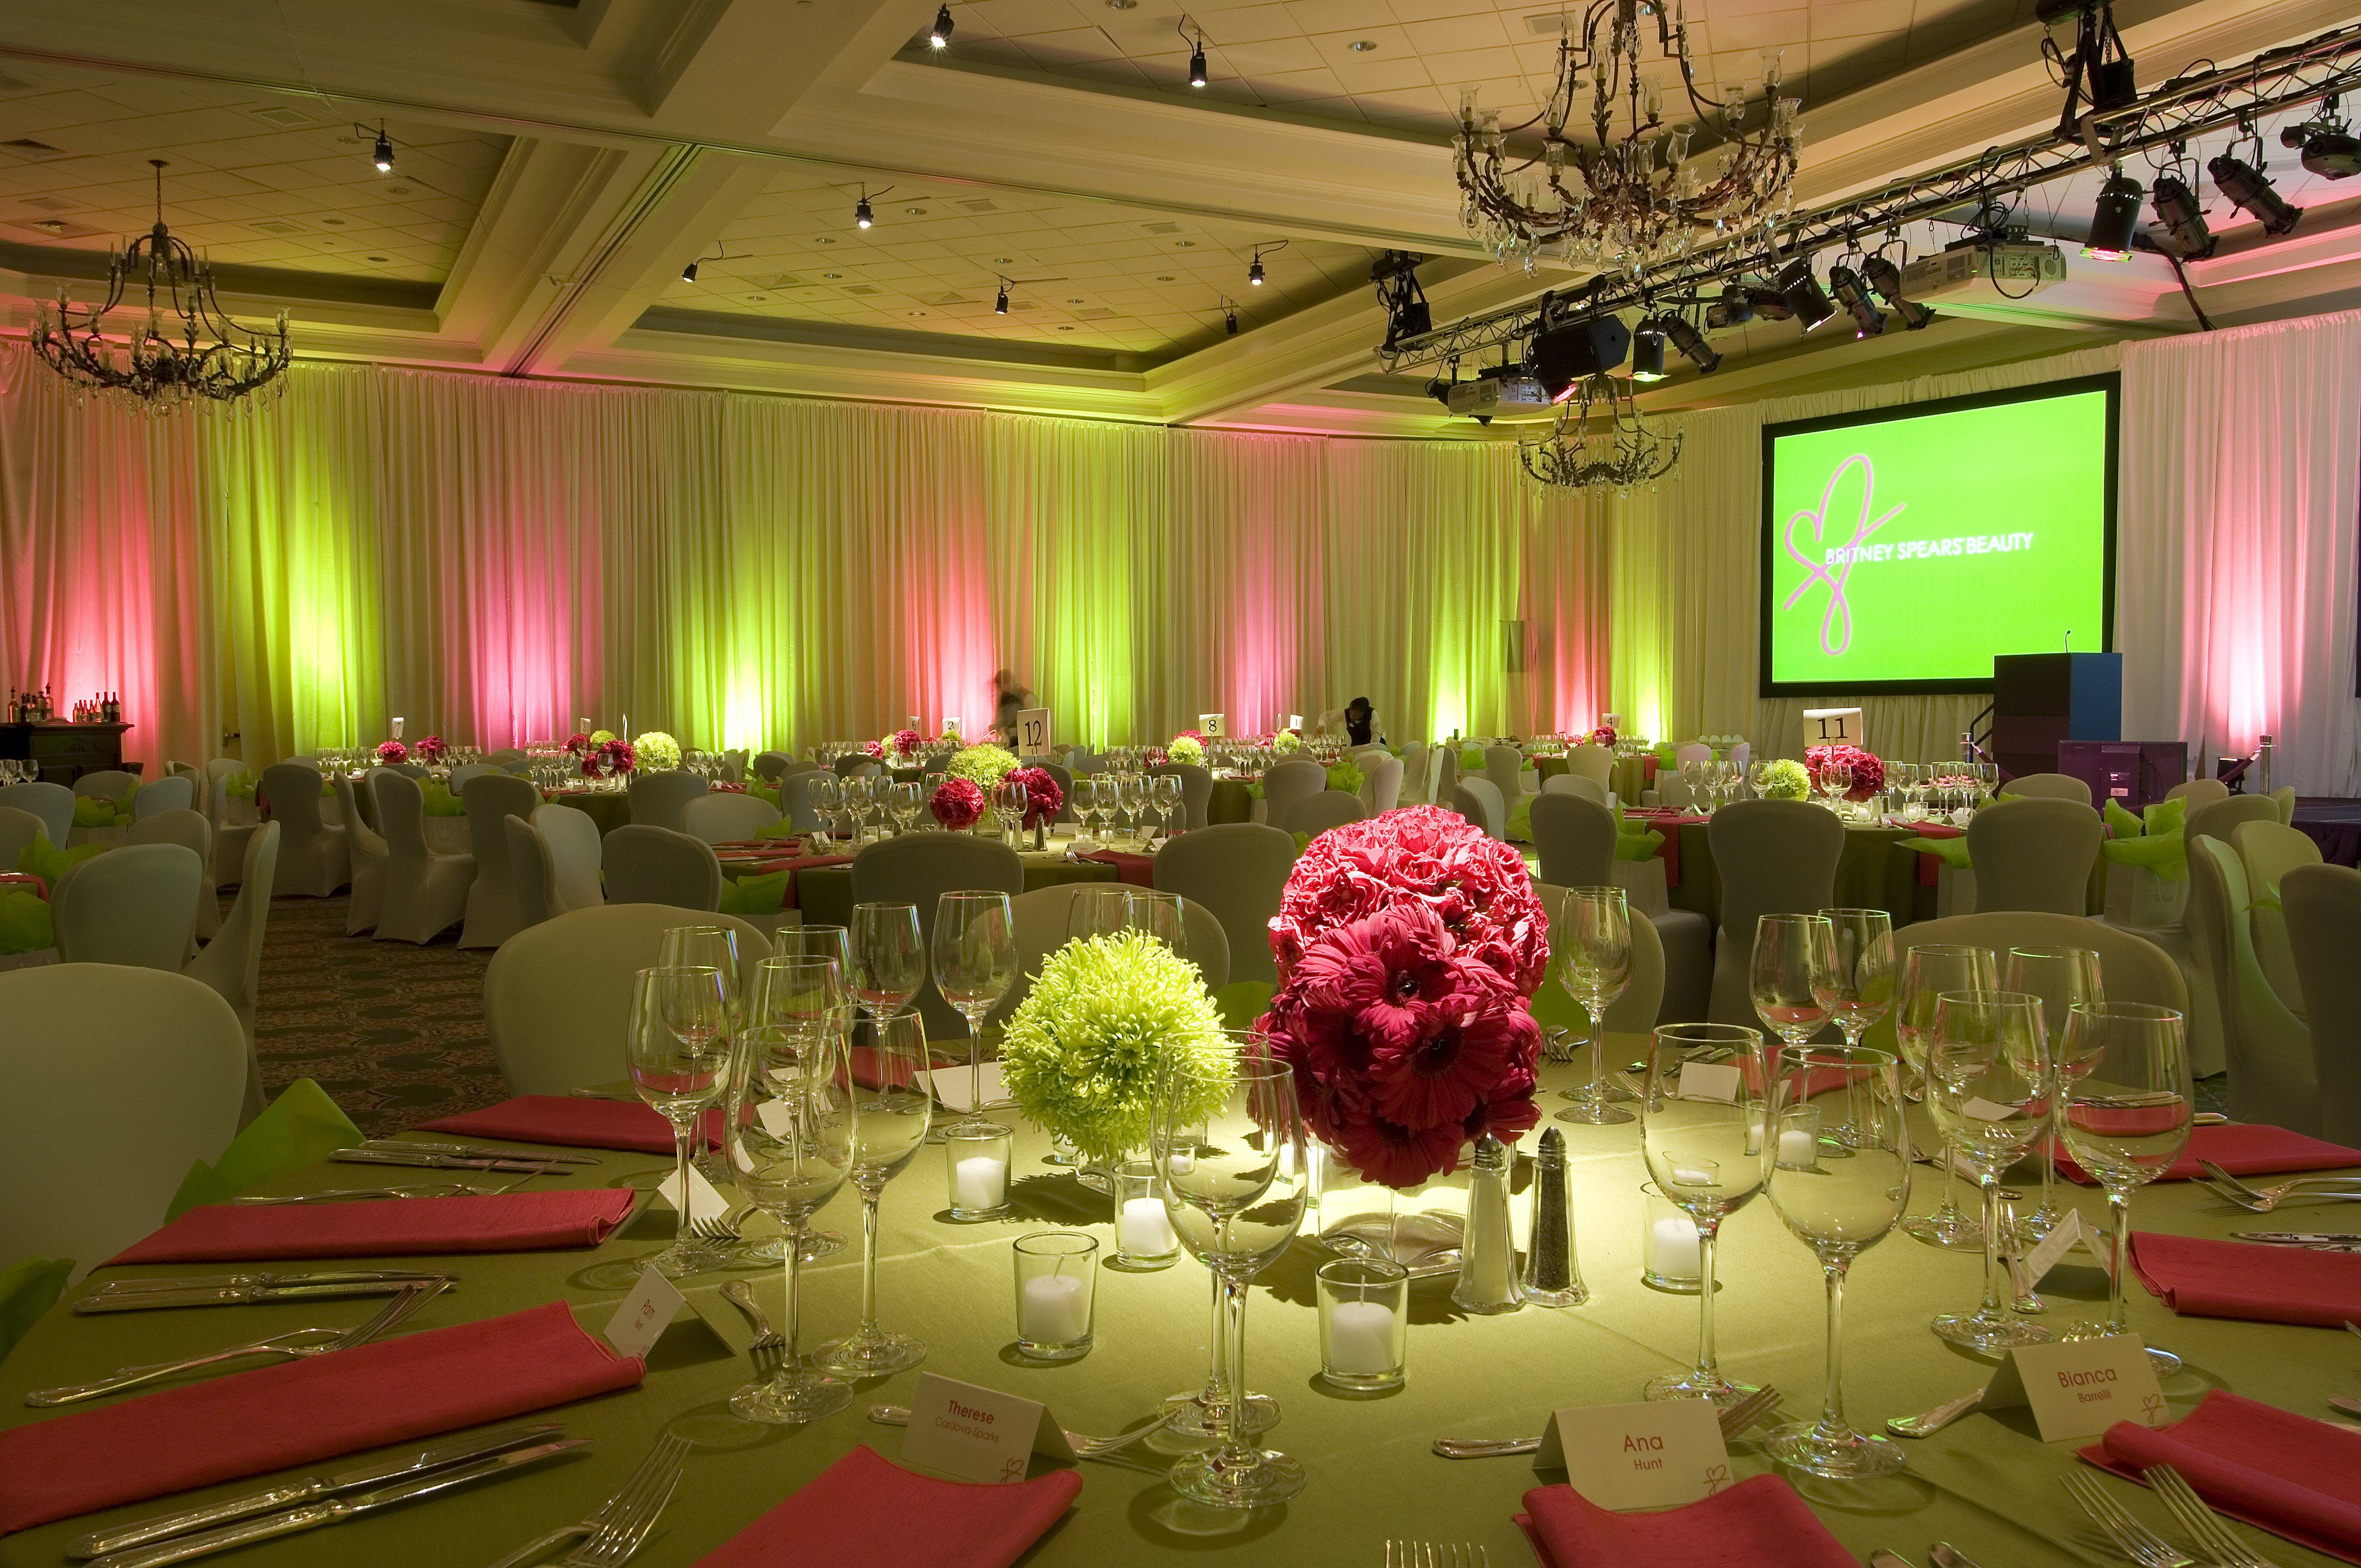 lighting decorations for weddings. Pink And Green Wedding Up Lighting Decorations For Weddings E